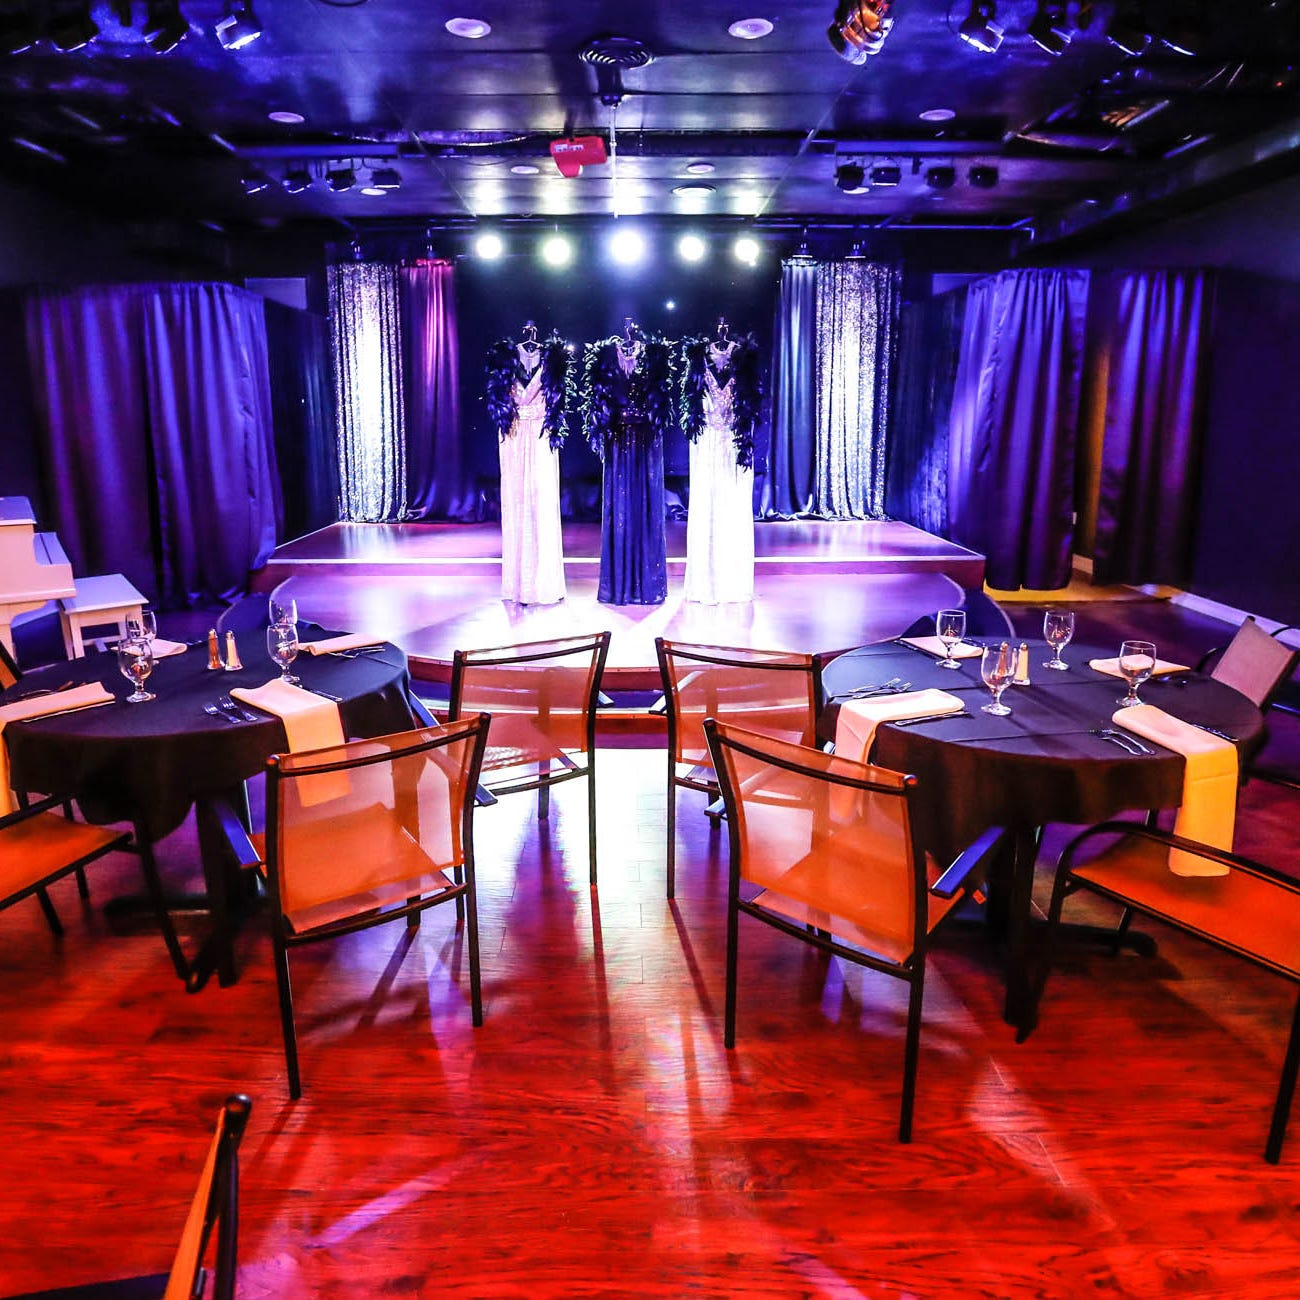 Now you can get brunch and dinner at Greenwood's cabaret theater